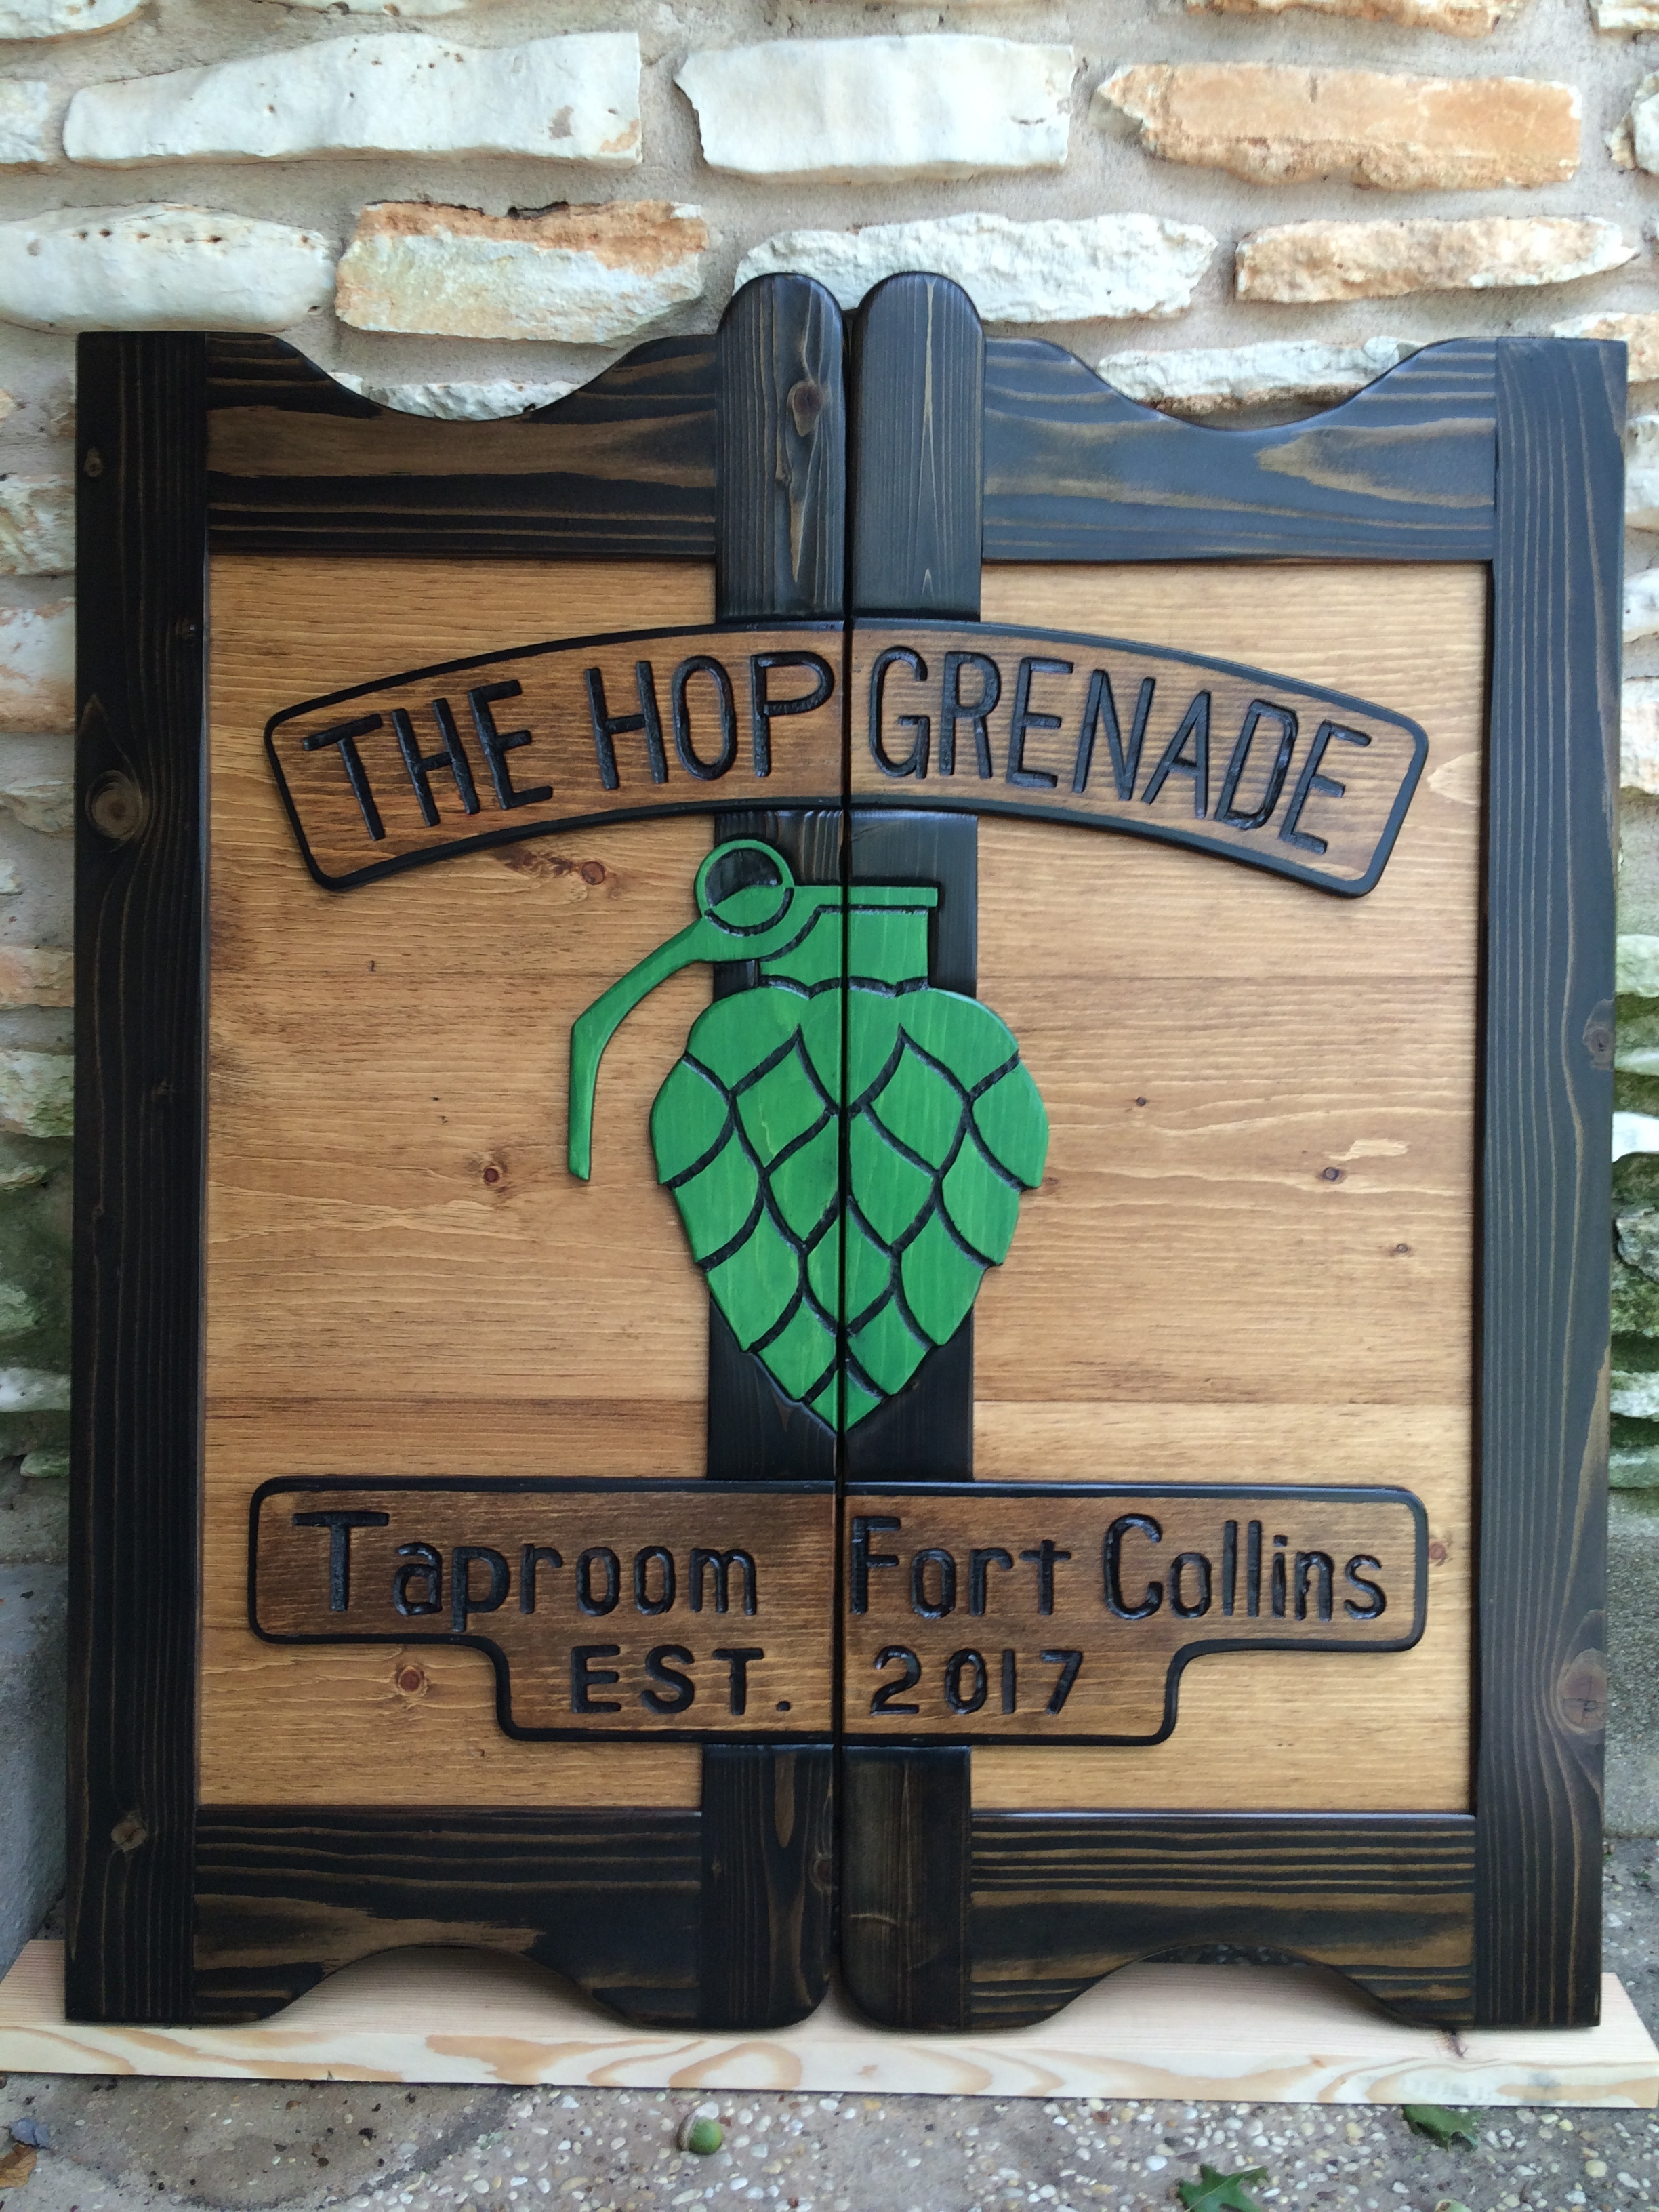 The Hop Grenade western saloon door with company logo